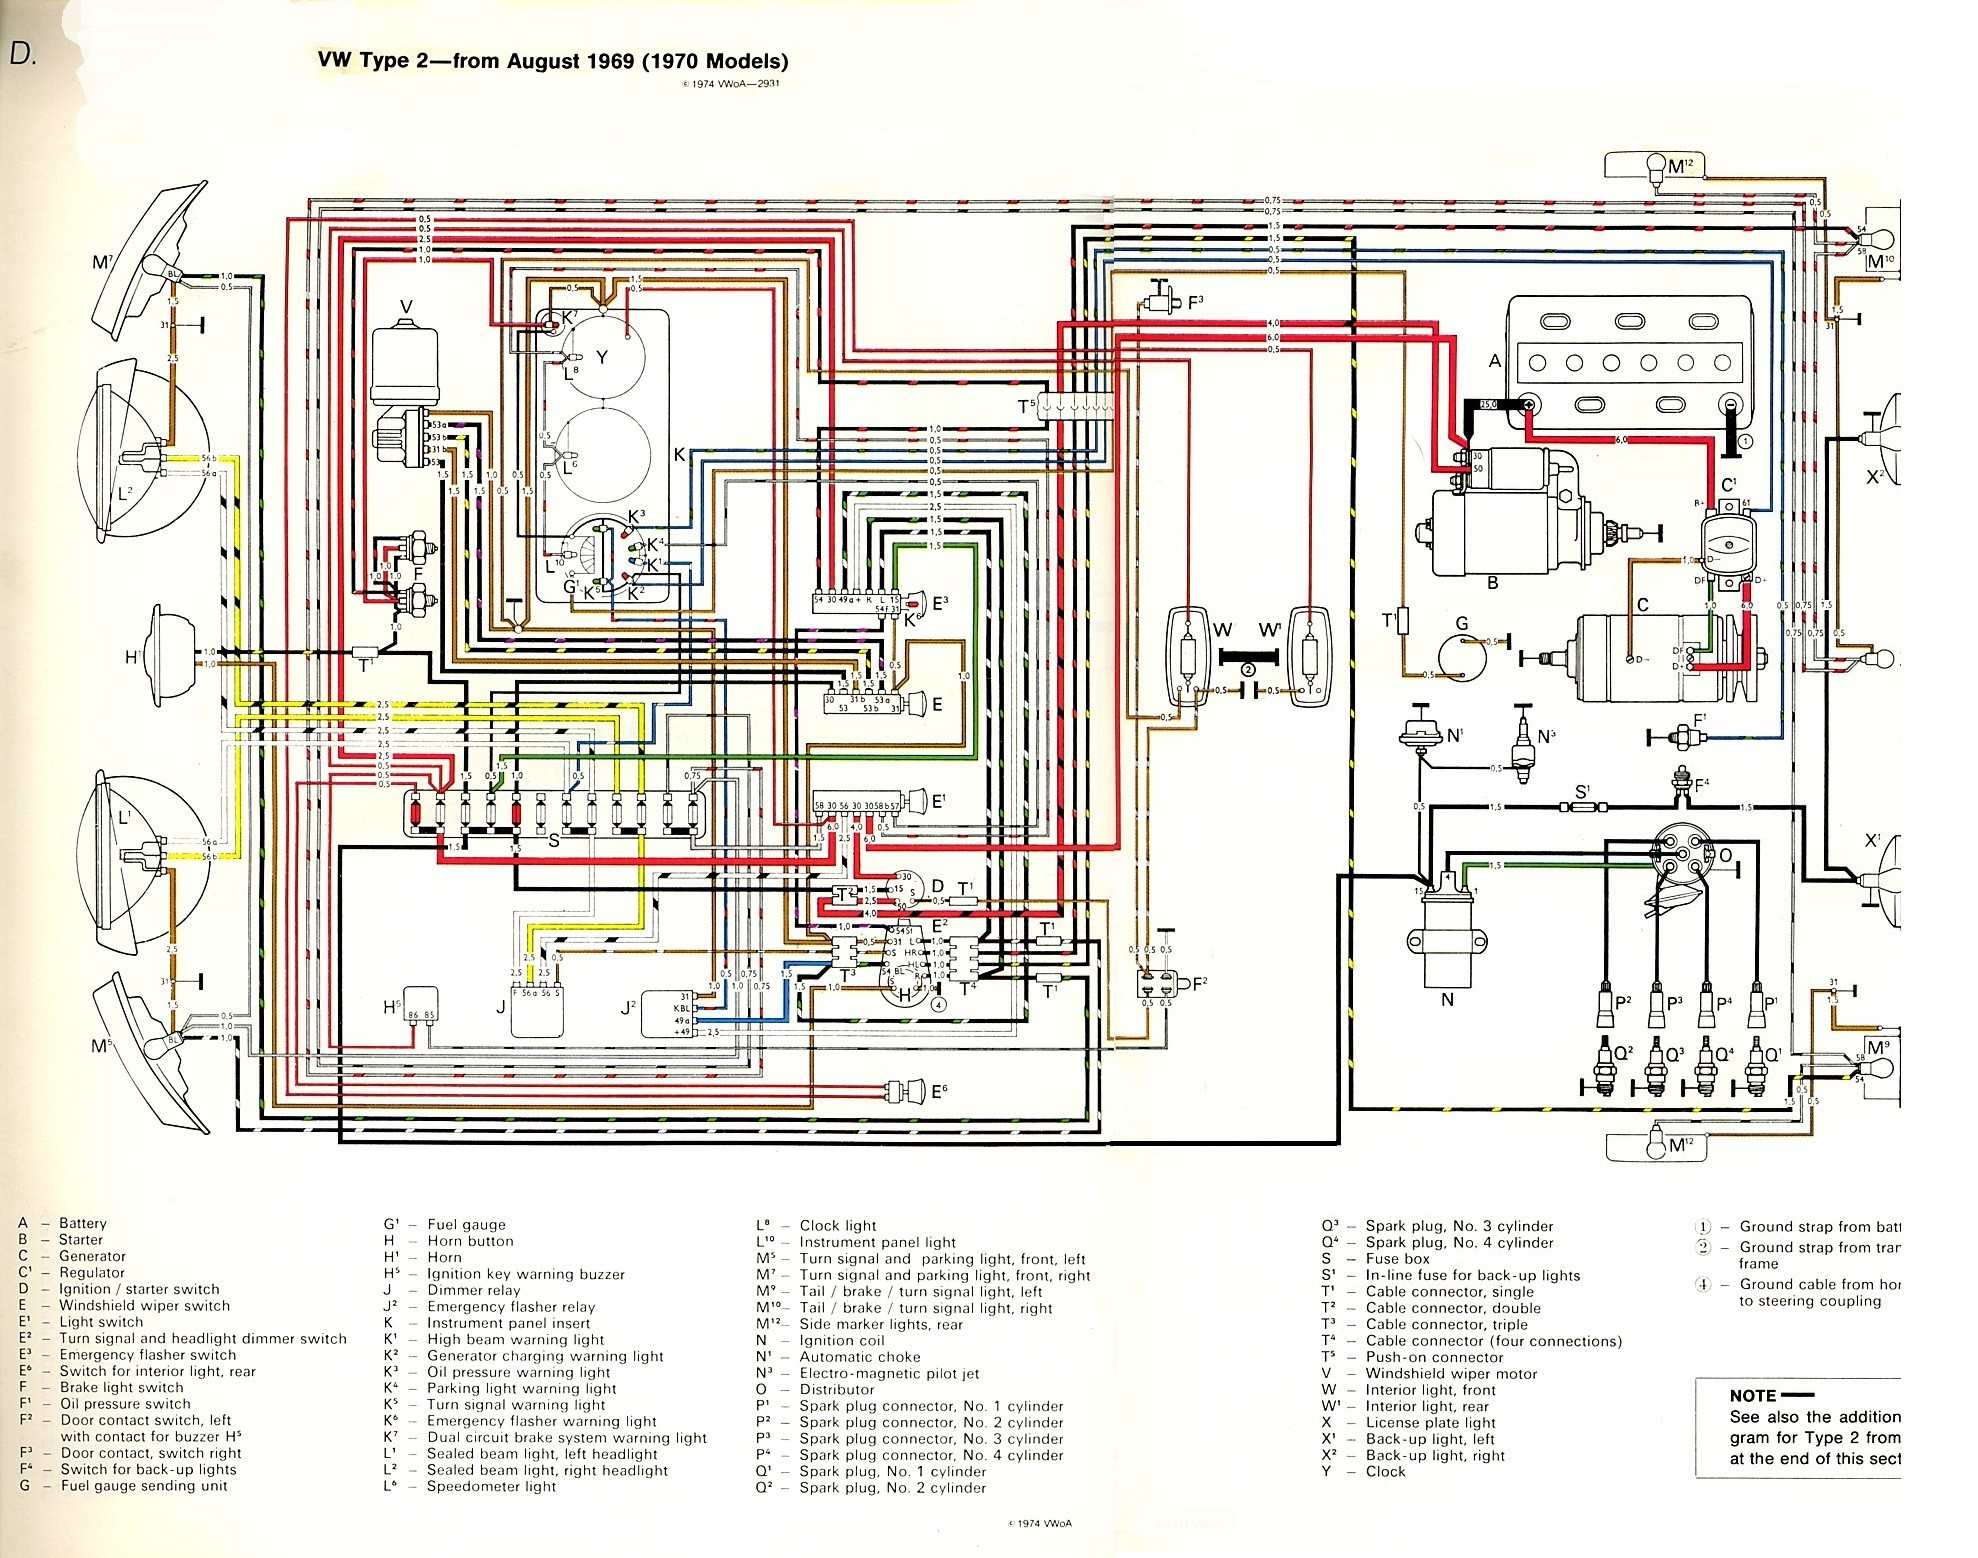 1967 camaro fuel gauge wiring diagram 1967 camaro wiring harness diagram fokus fuse9 klictravel nl  1967 camaro wiring harness diagram